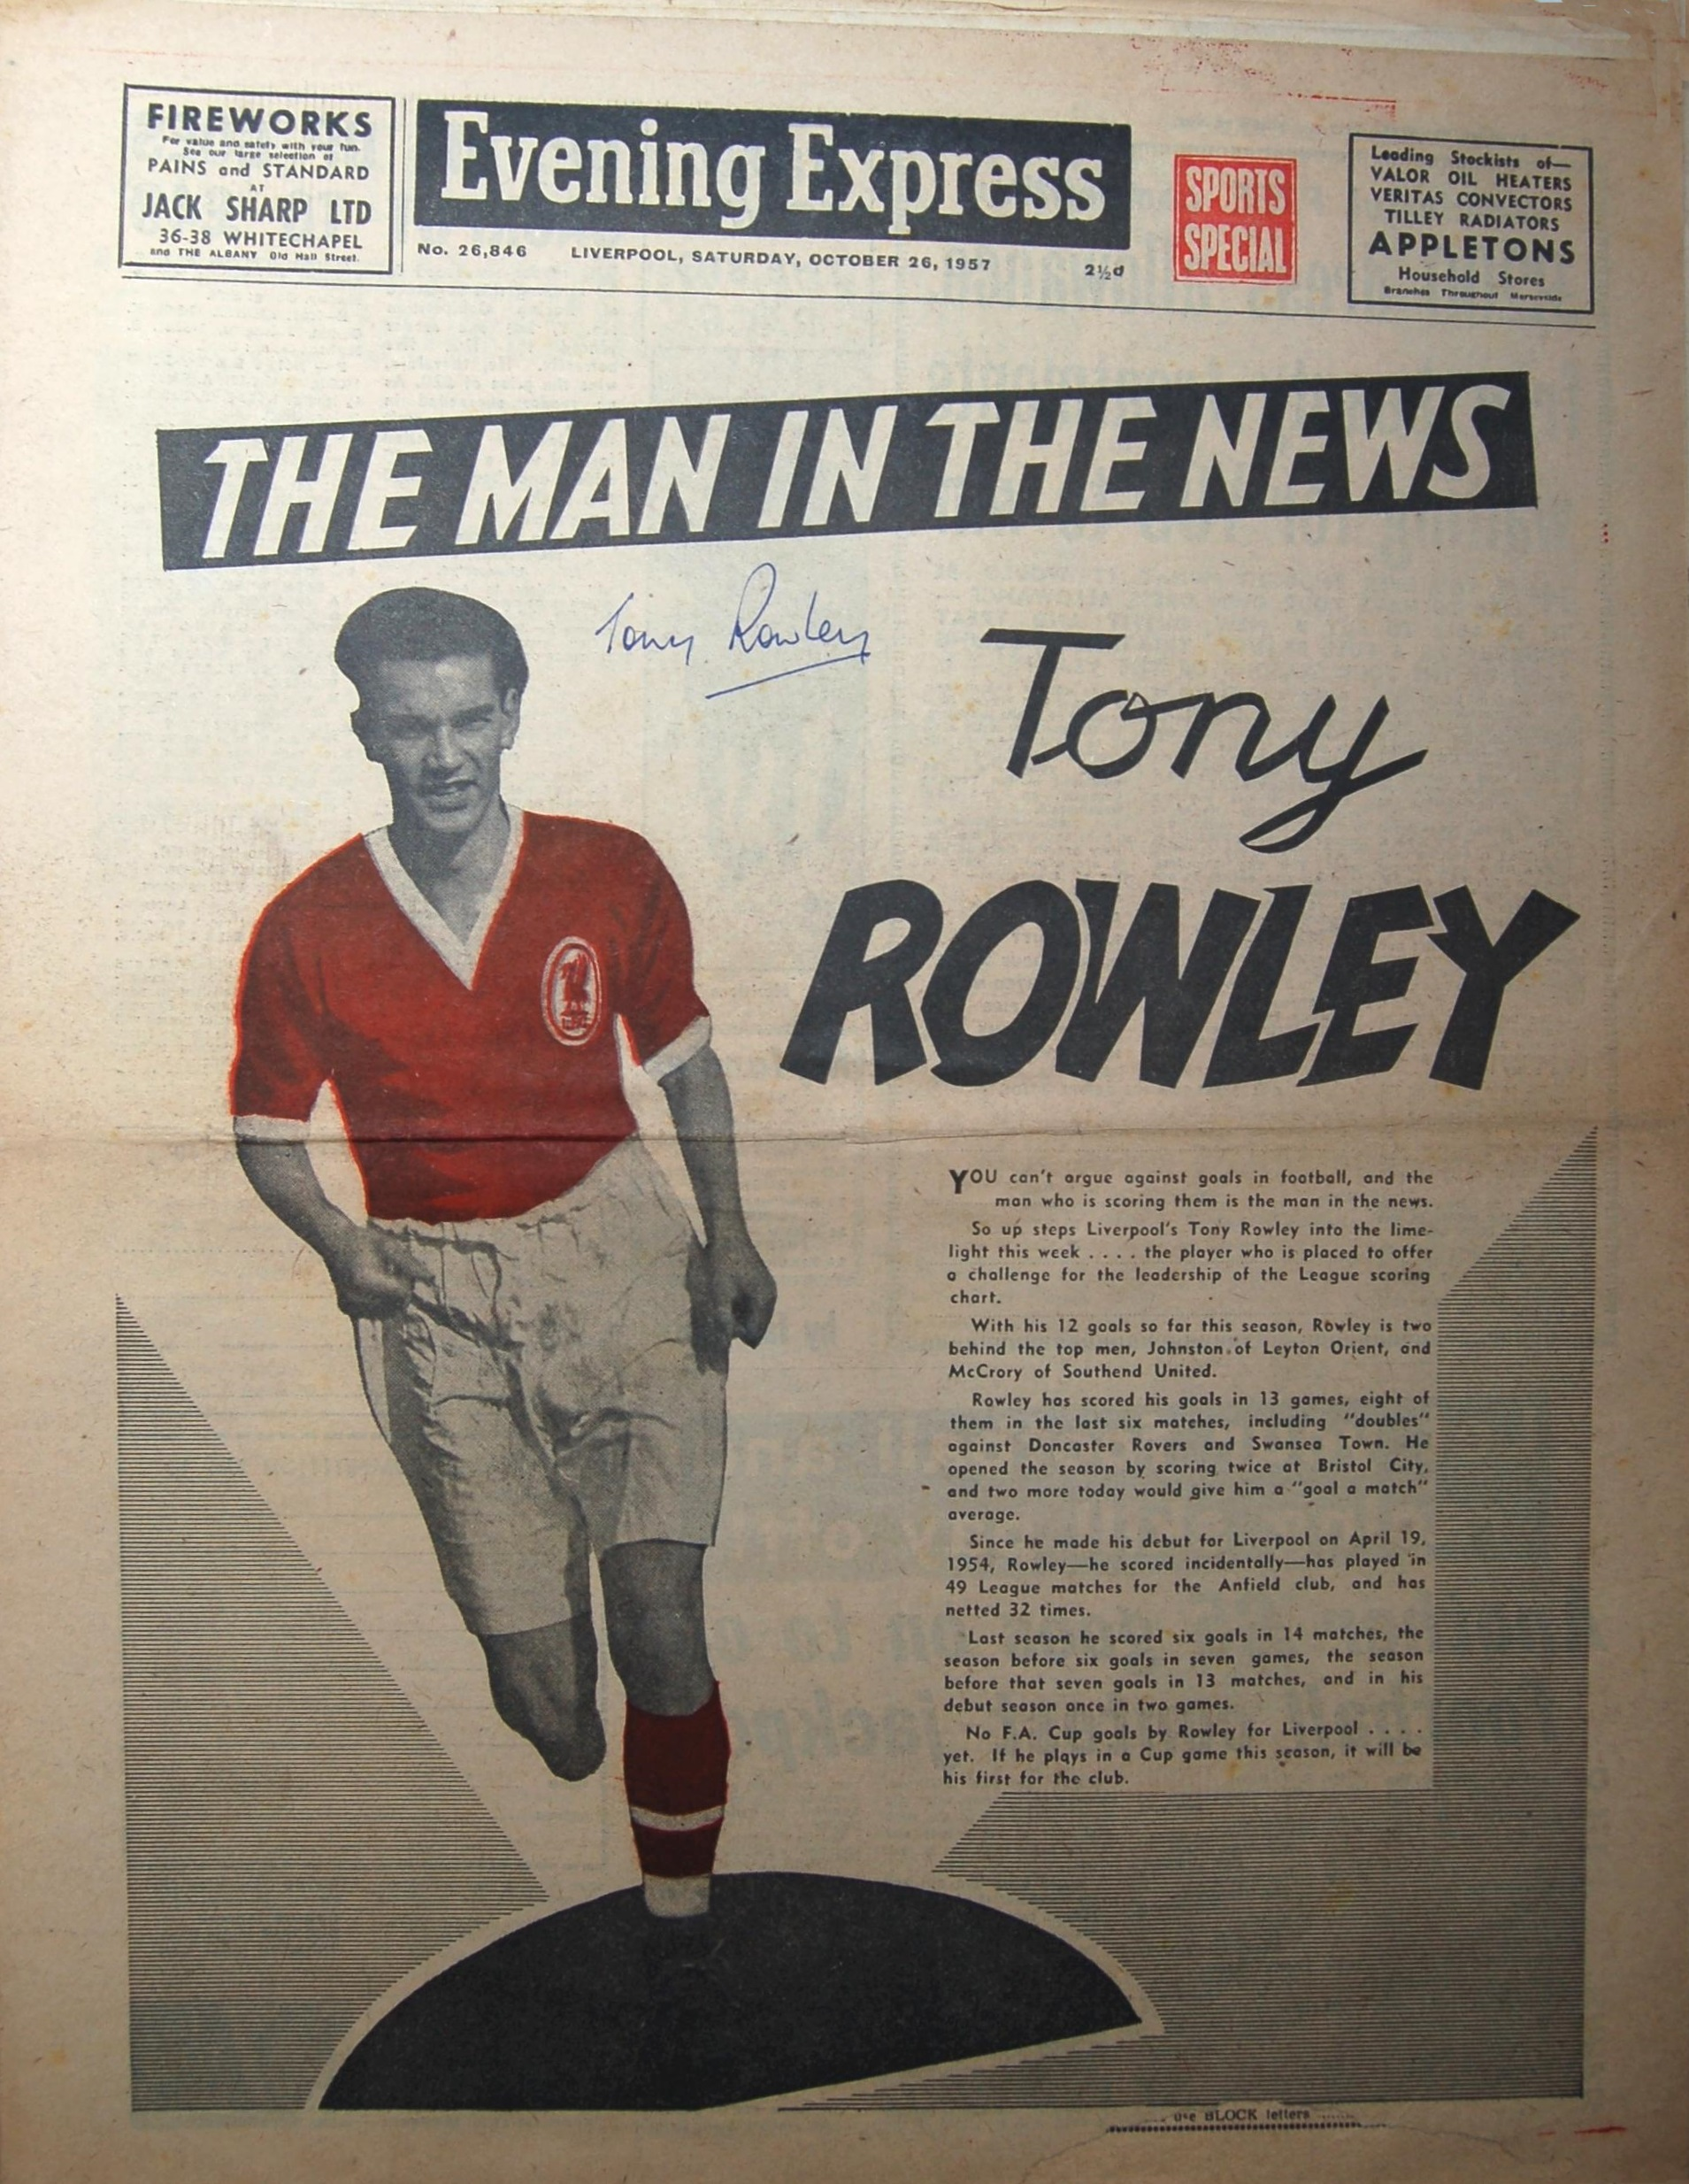 Rowley on the cover of the Evening Express on 26 October 1957